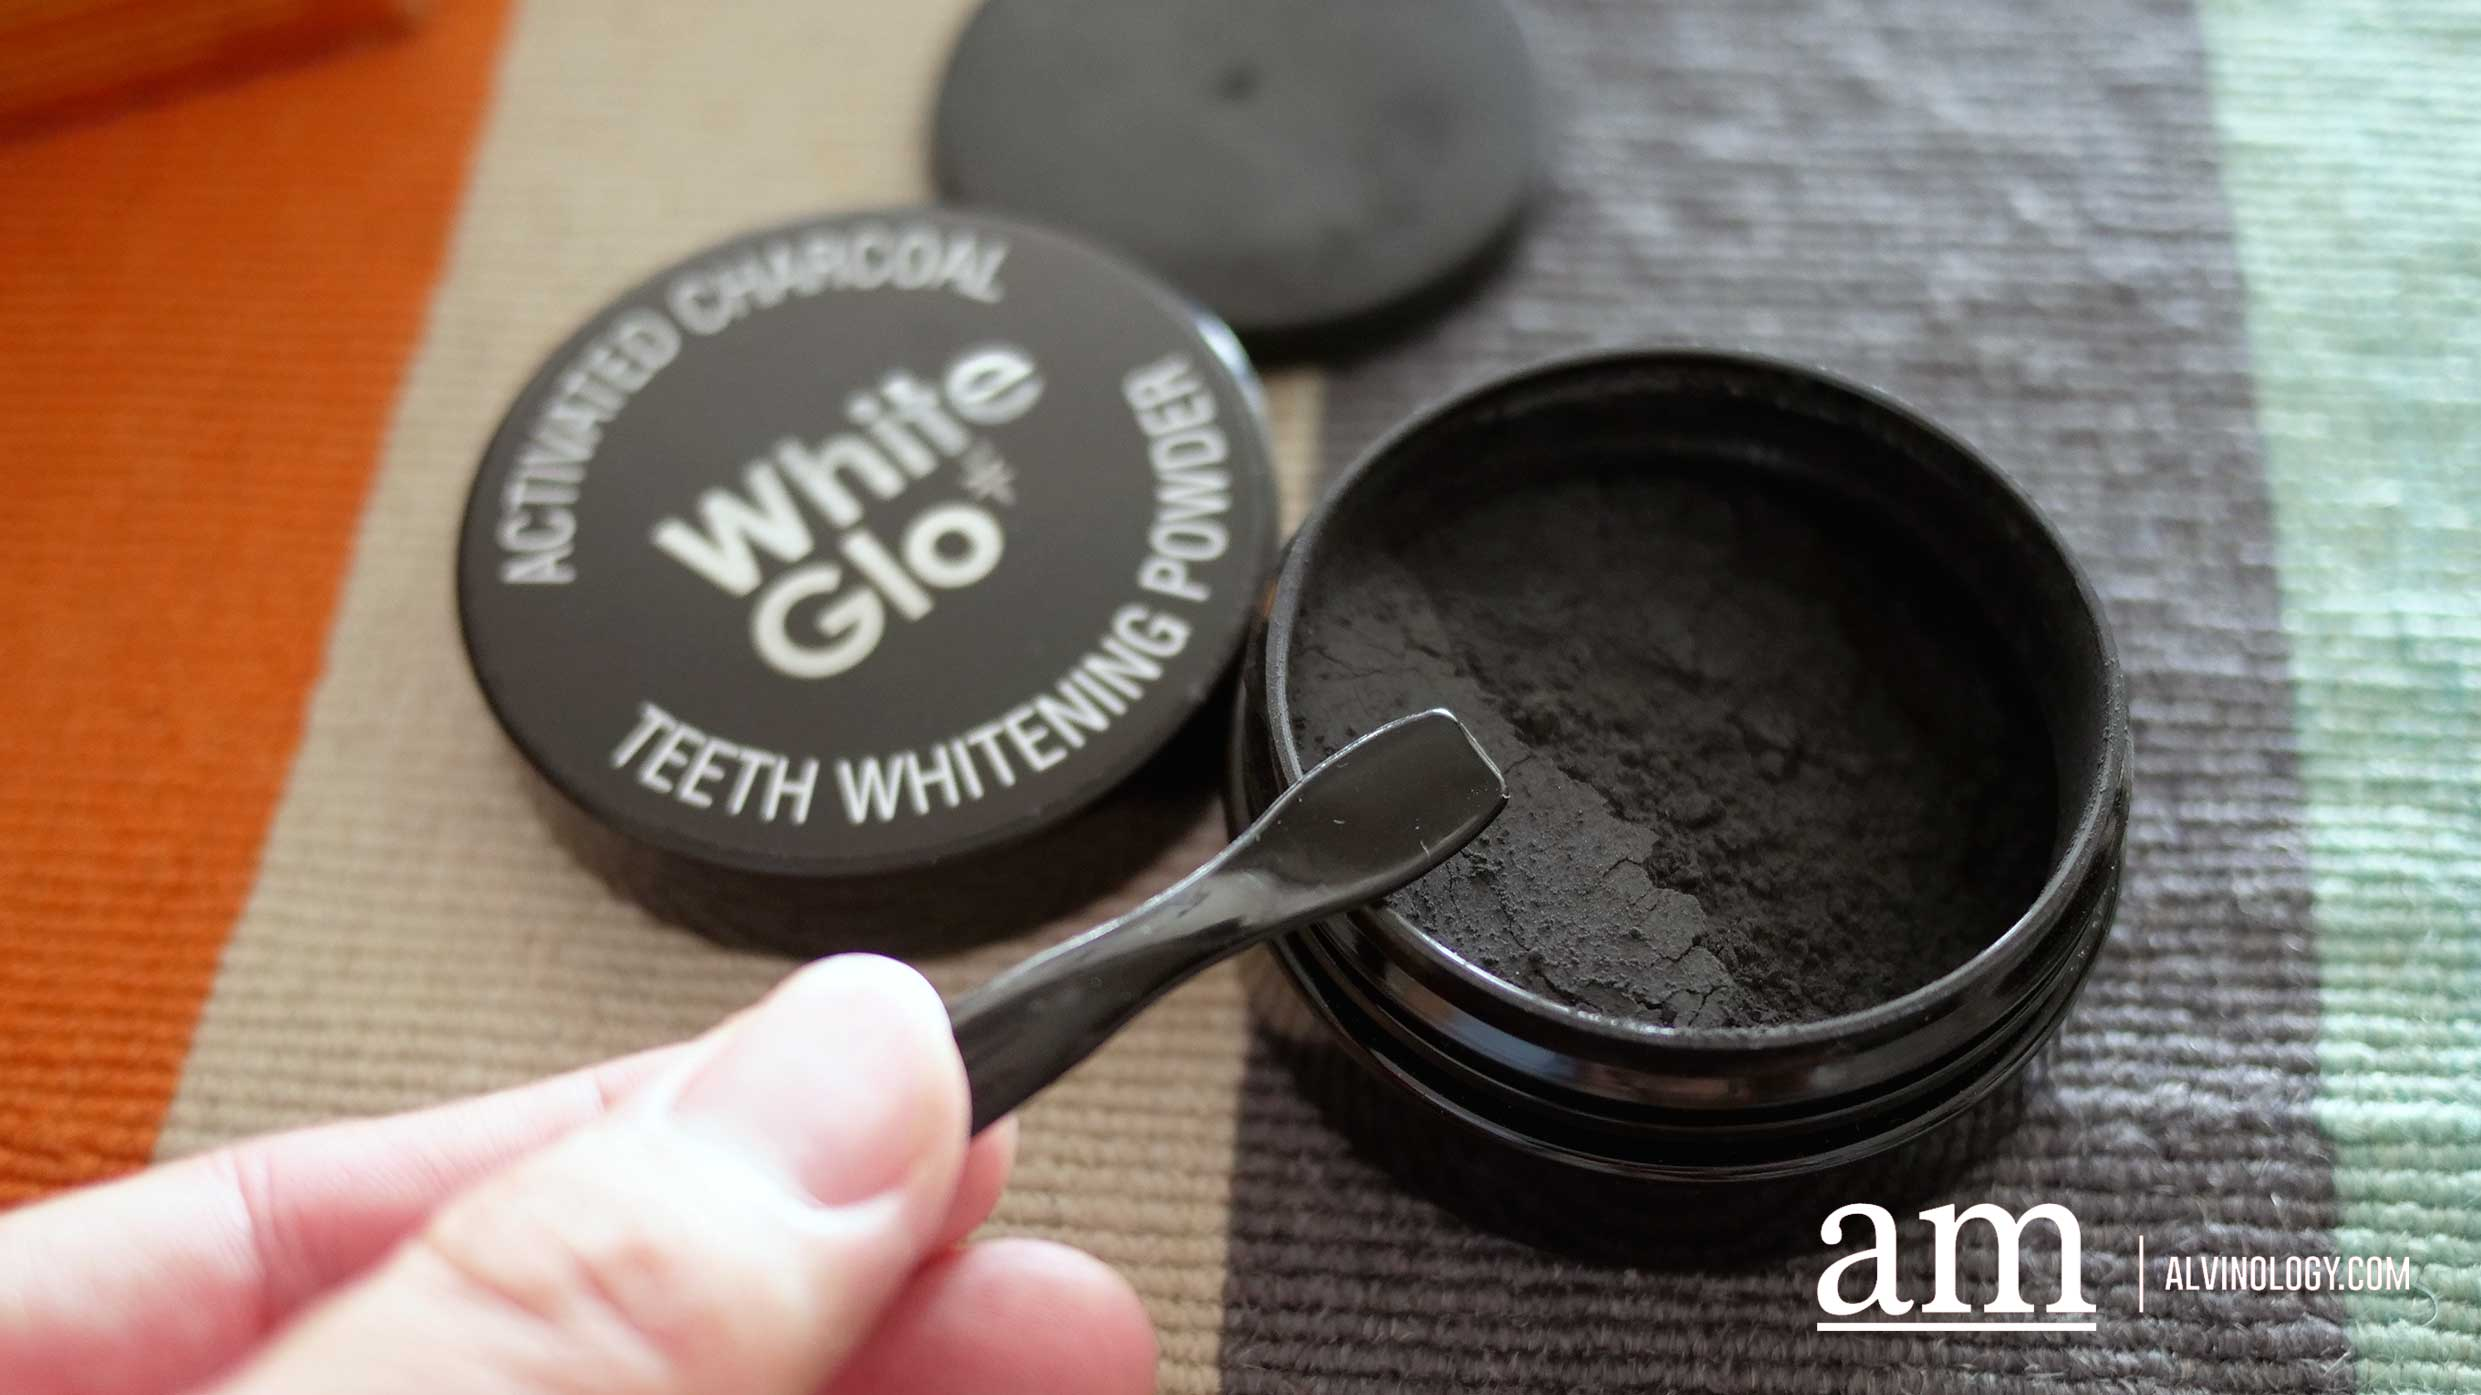 Pearly White Teeth with White Glo Singapore - Alvinology